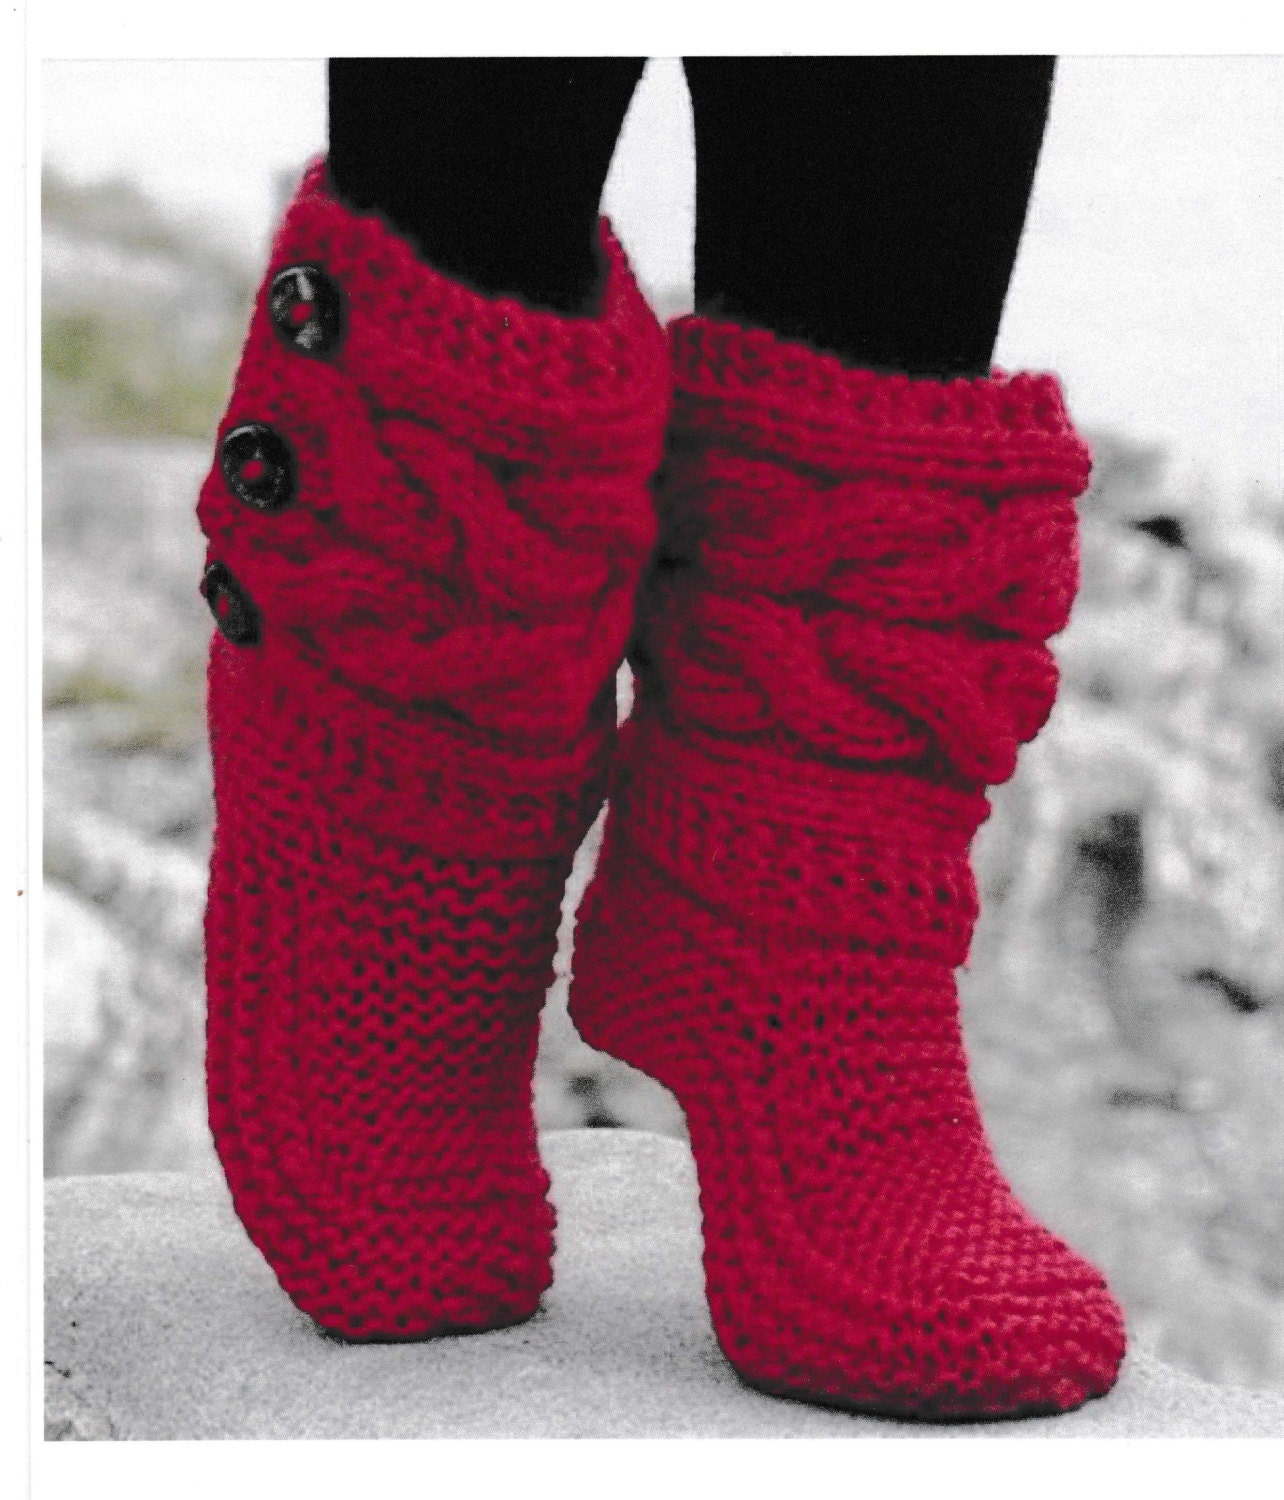 Bed Socks Knitting Pattern : PDF Vintage Bed Socks Knitting Pattern Vintage Retro Bed